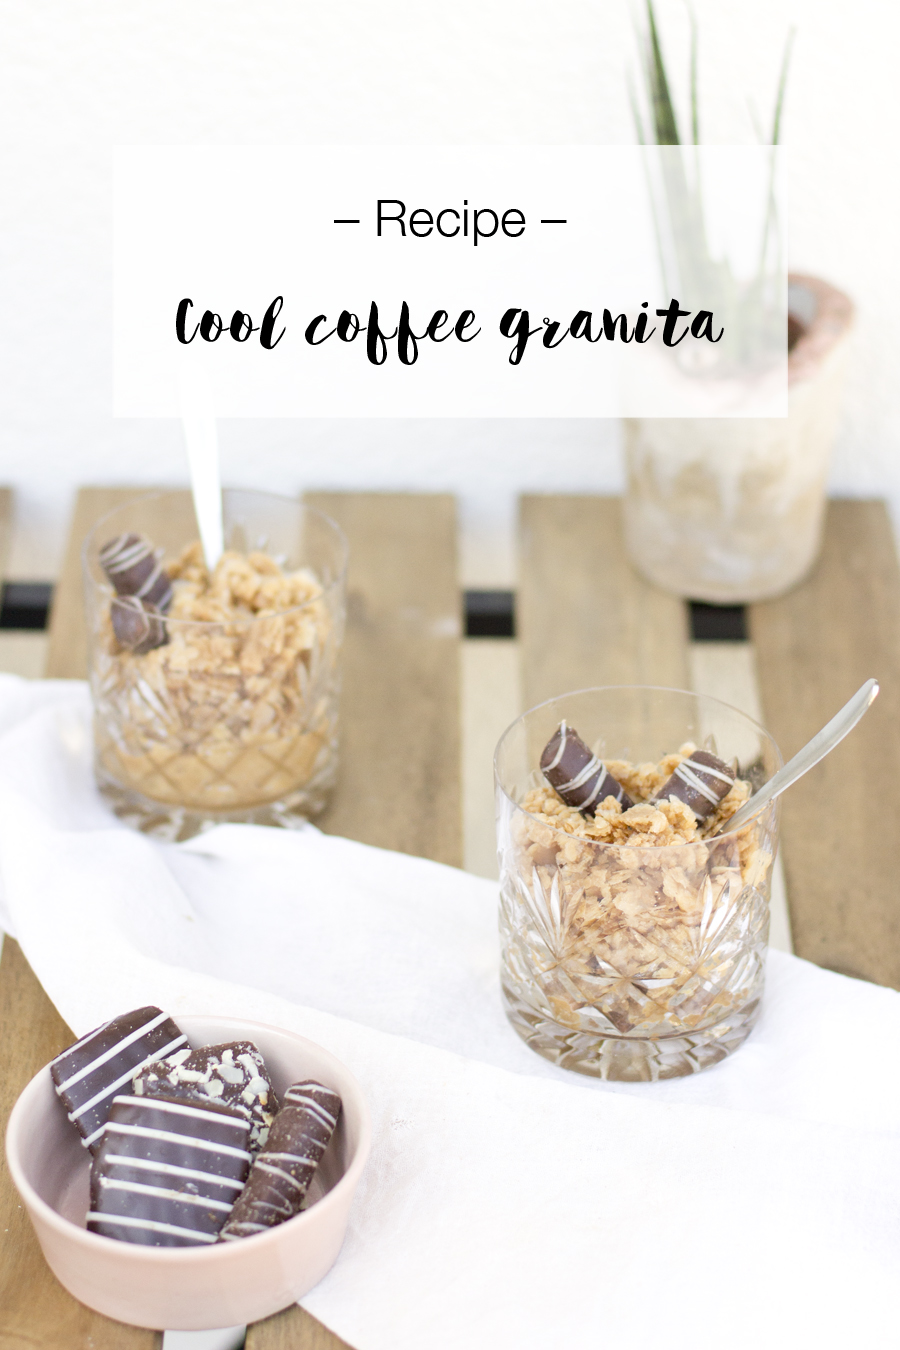 Illy coffee granita recipe | LOOK WHAT I MADE ...